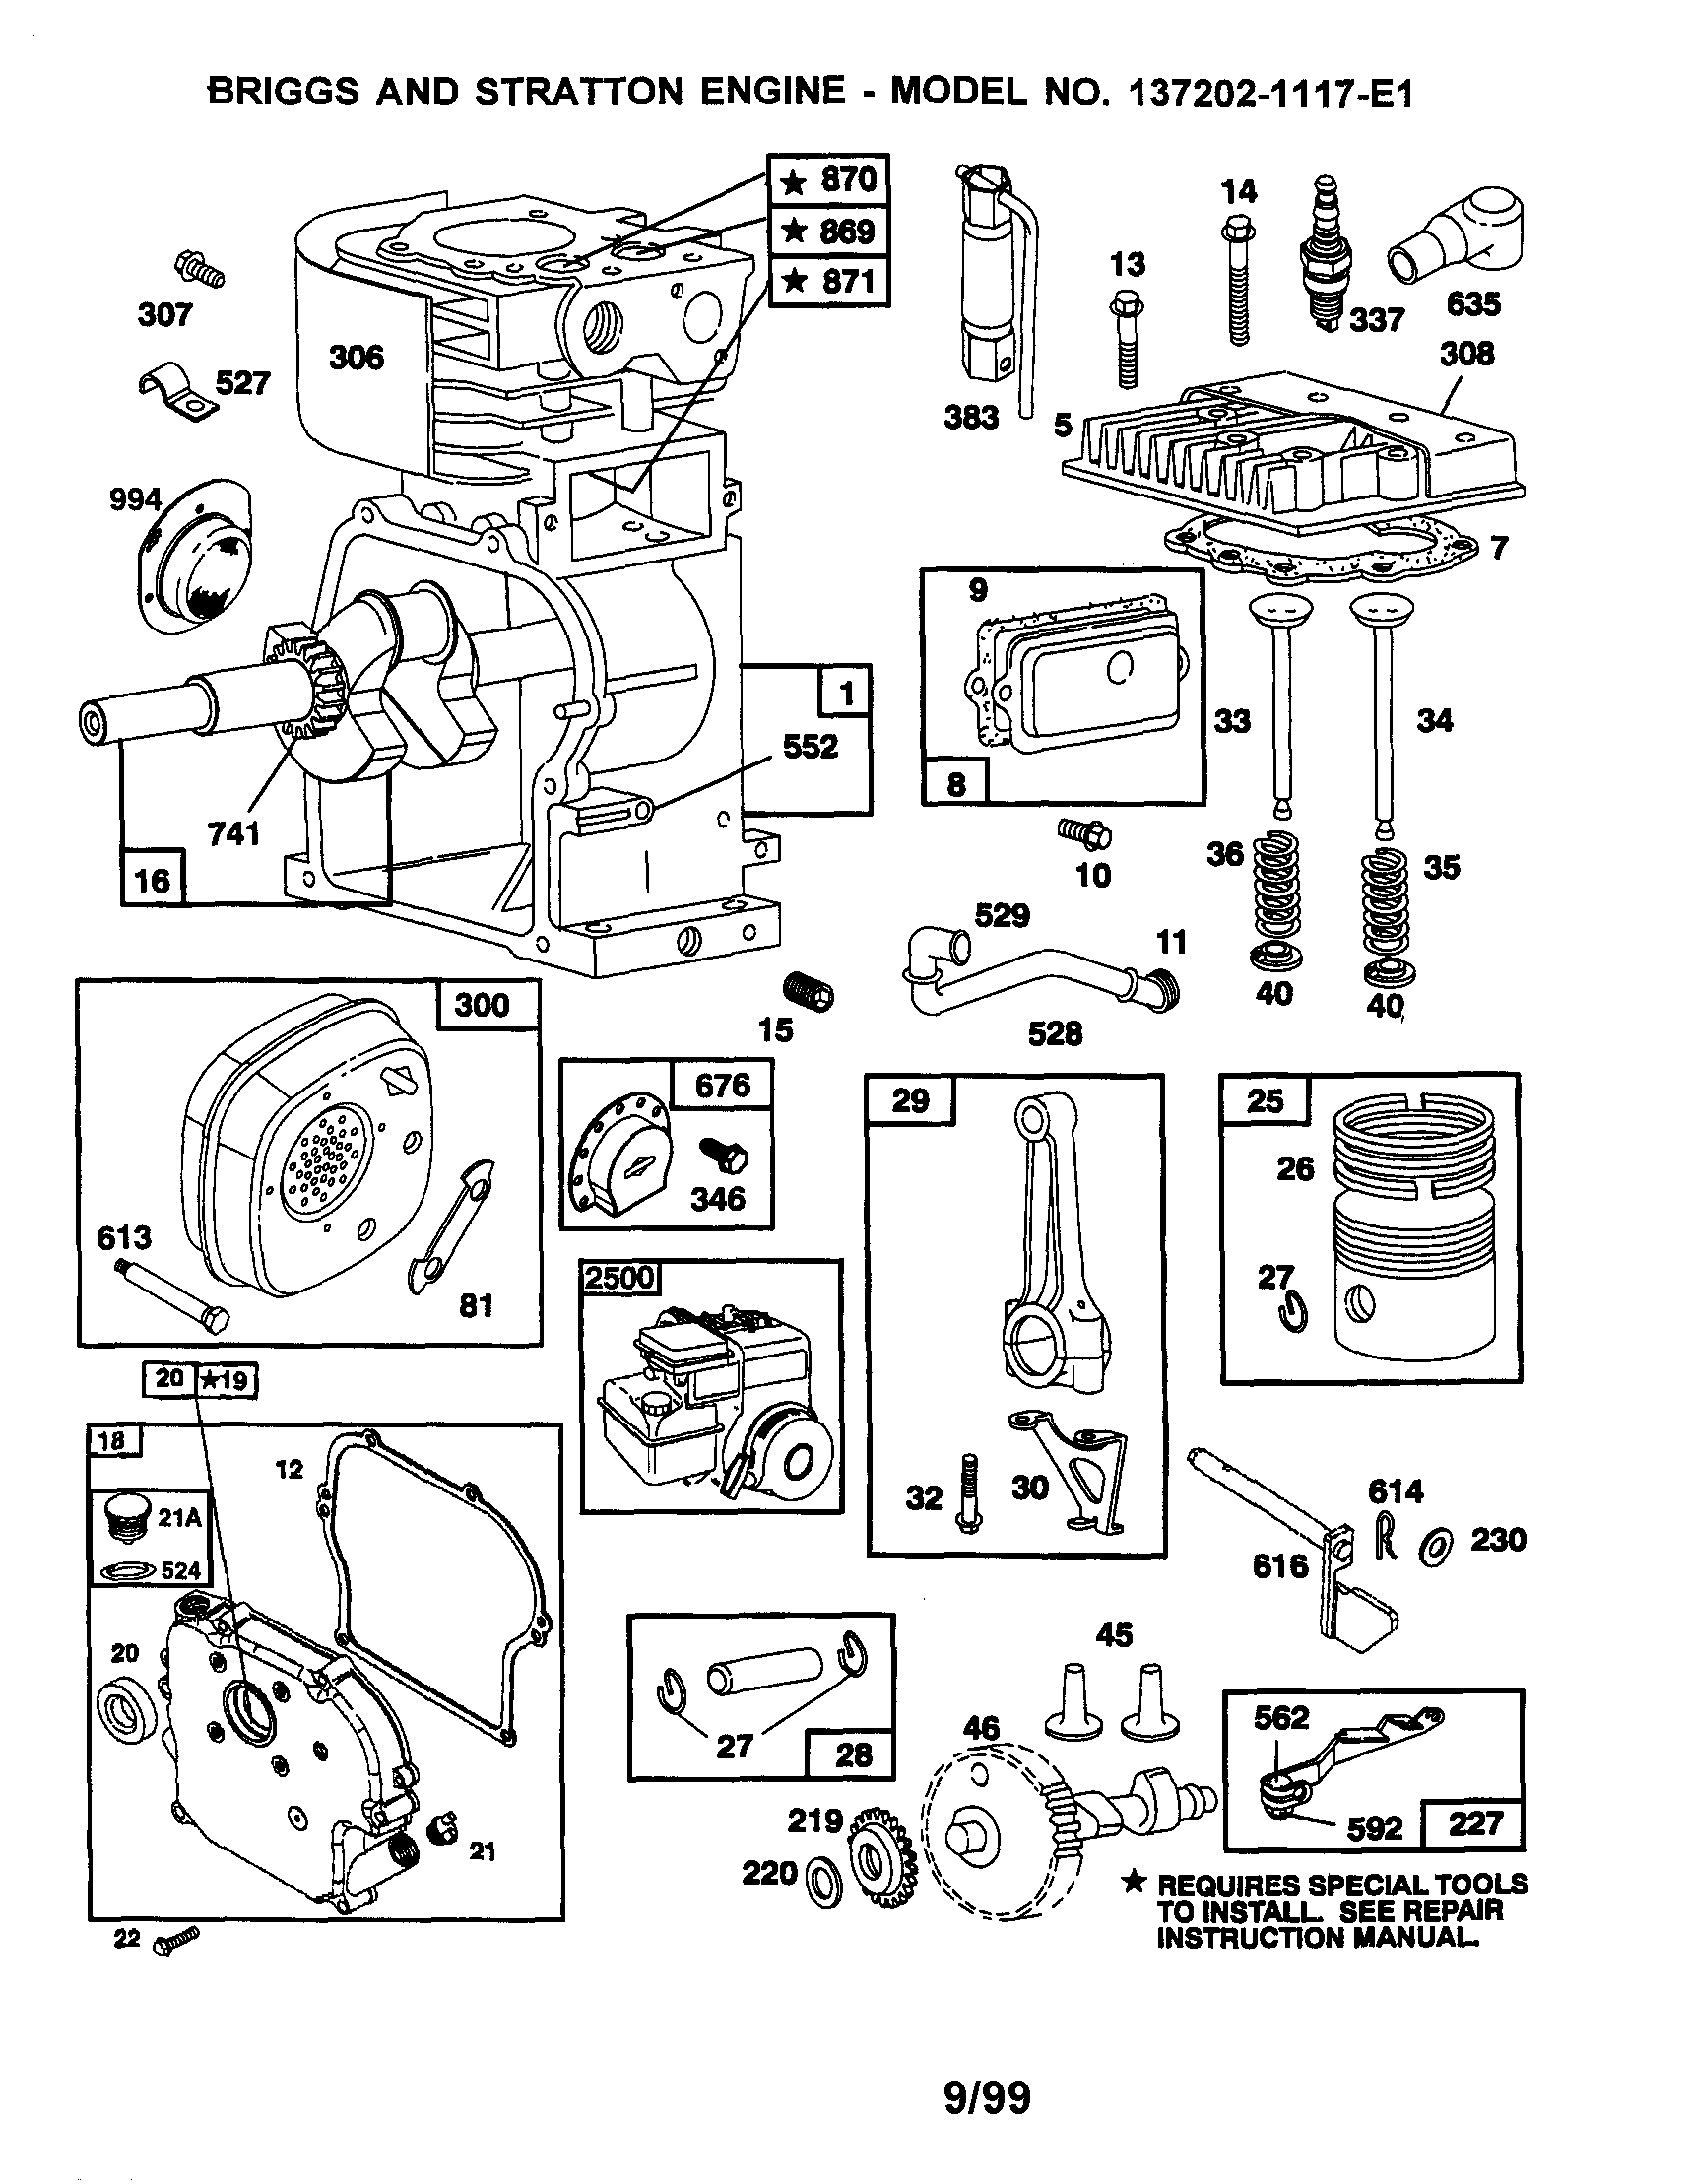 Briggs-Stratton model 137202-1117-E1 engine genuine parts